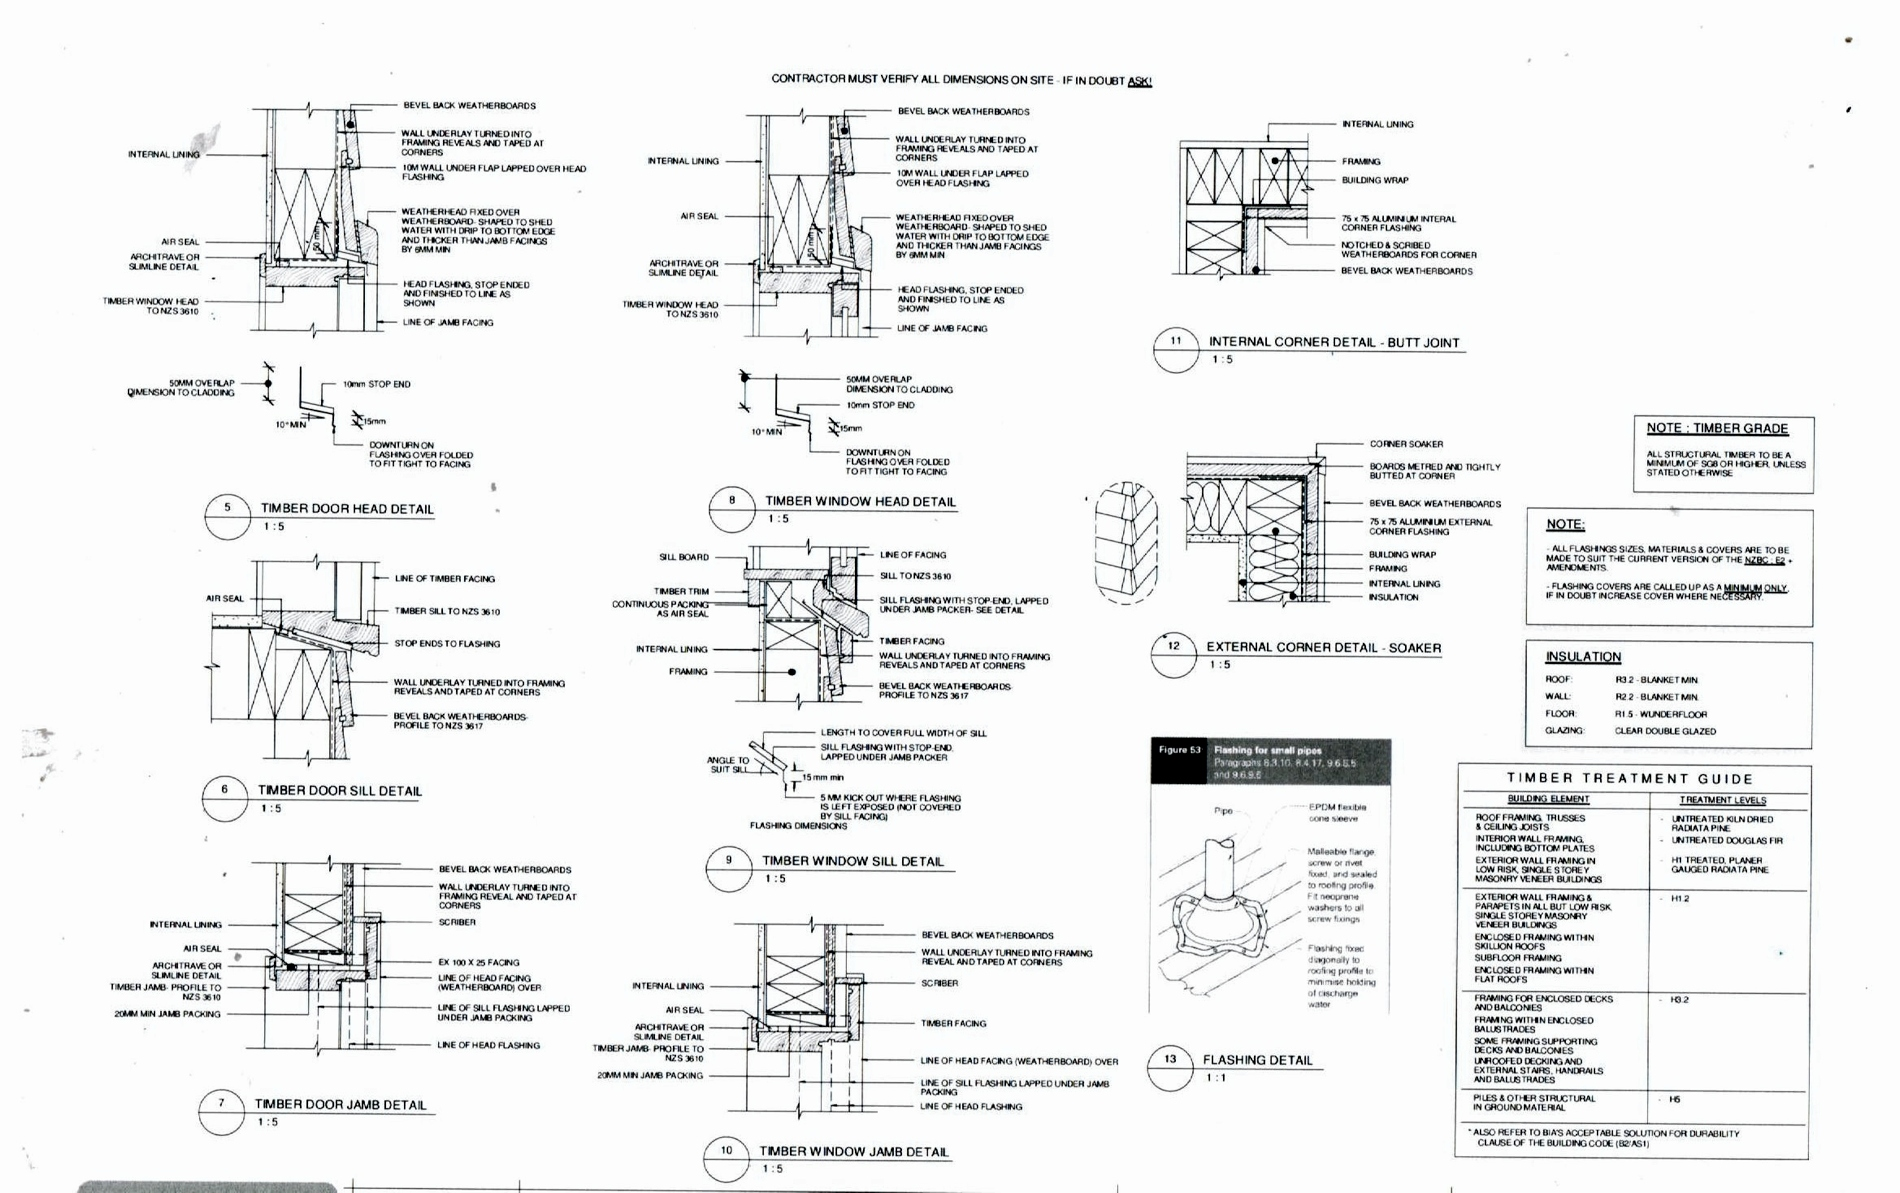 Zhp81d11ecb7 further Diagrams moreover Diagrams together with Mechanical 20Systems 20Architecture besides VYBRID BD1. on block diagram